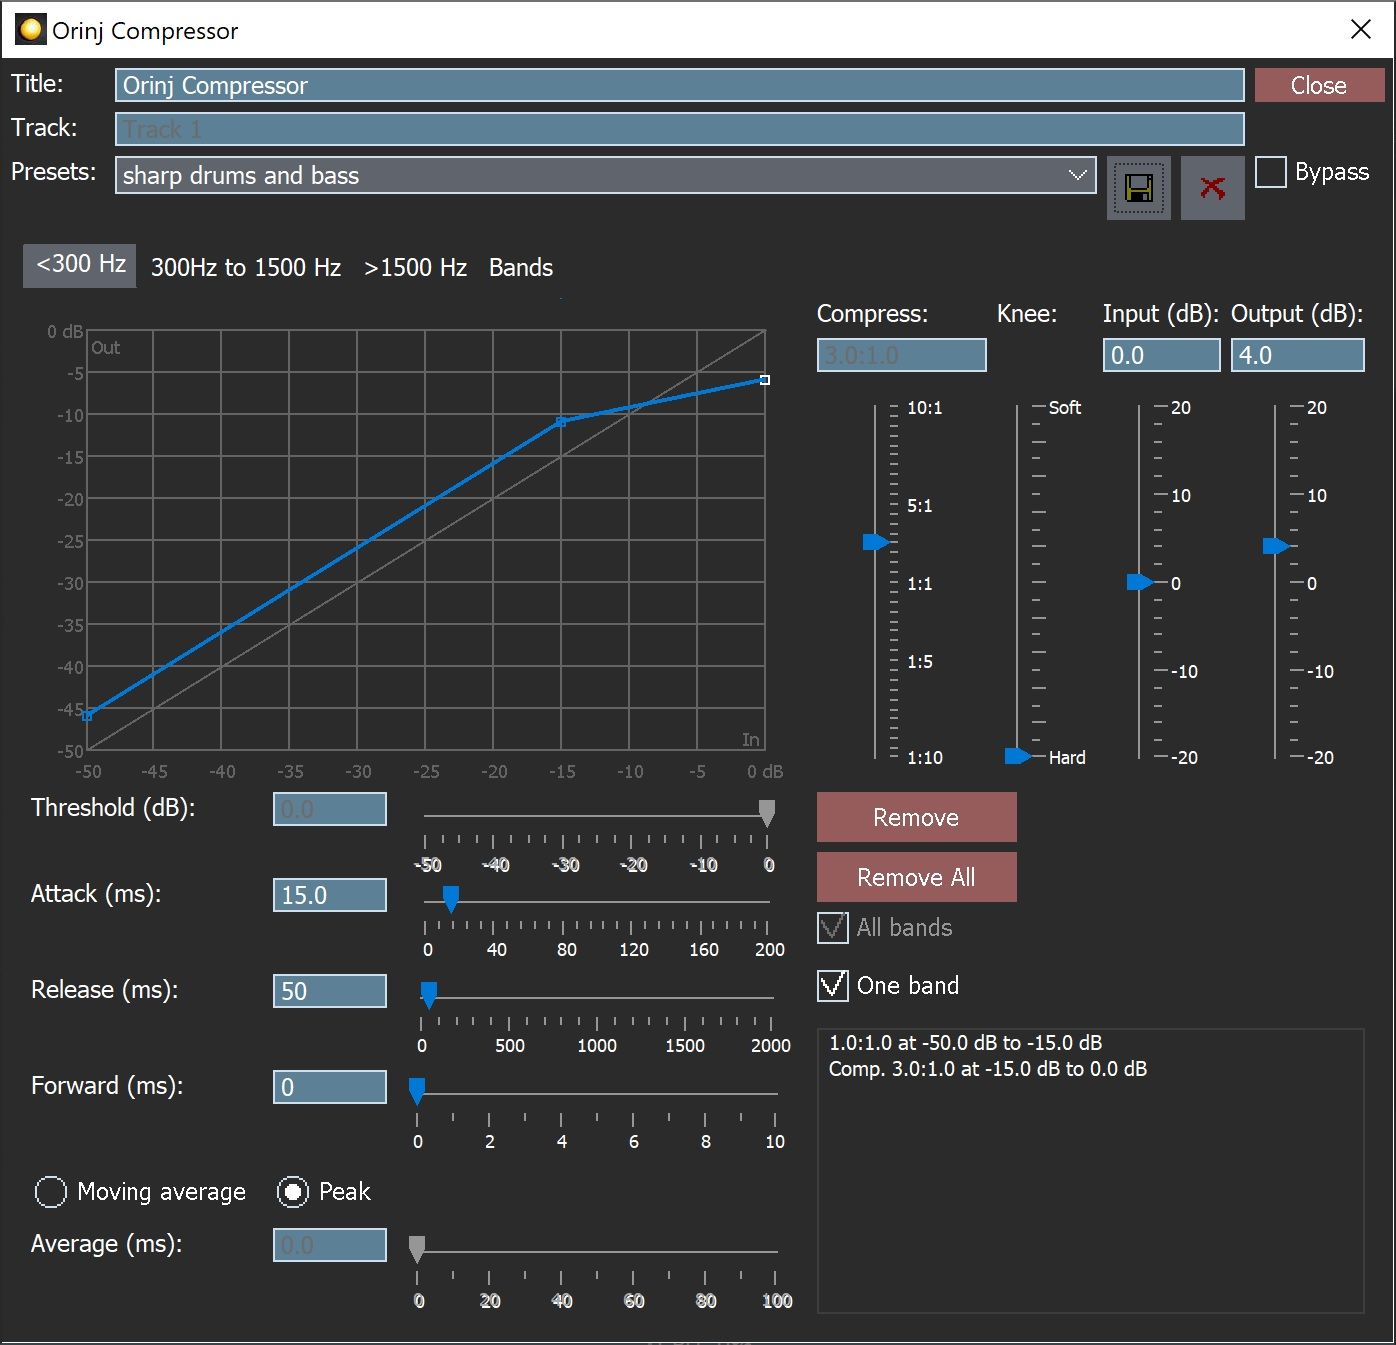 The Orinj Compressor dialog